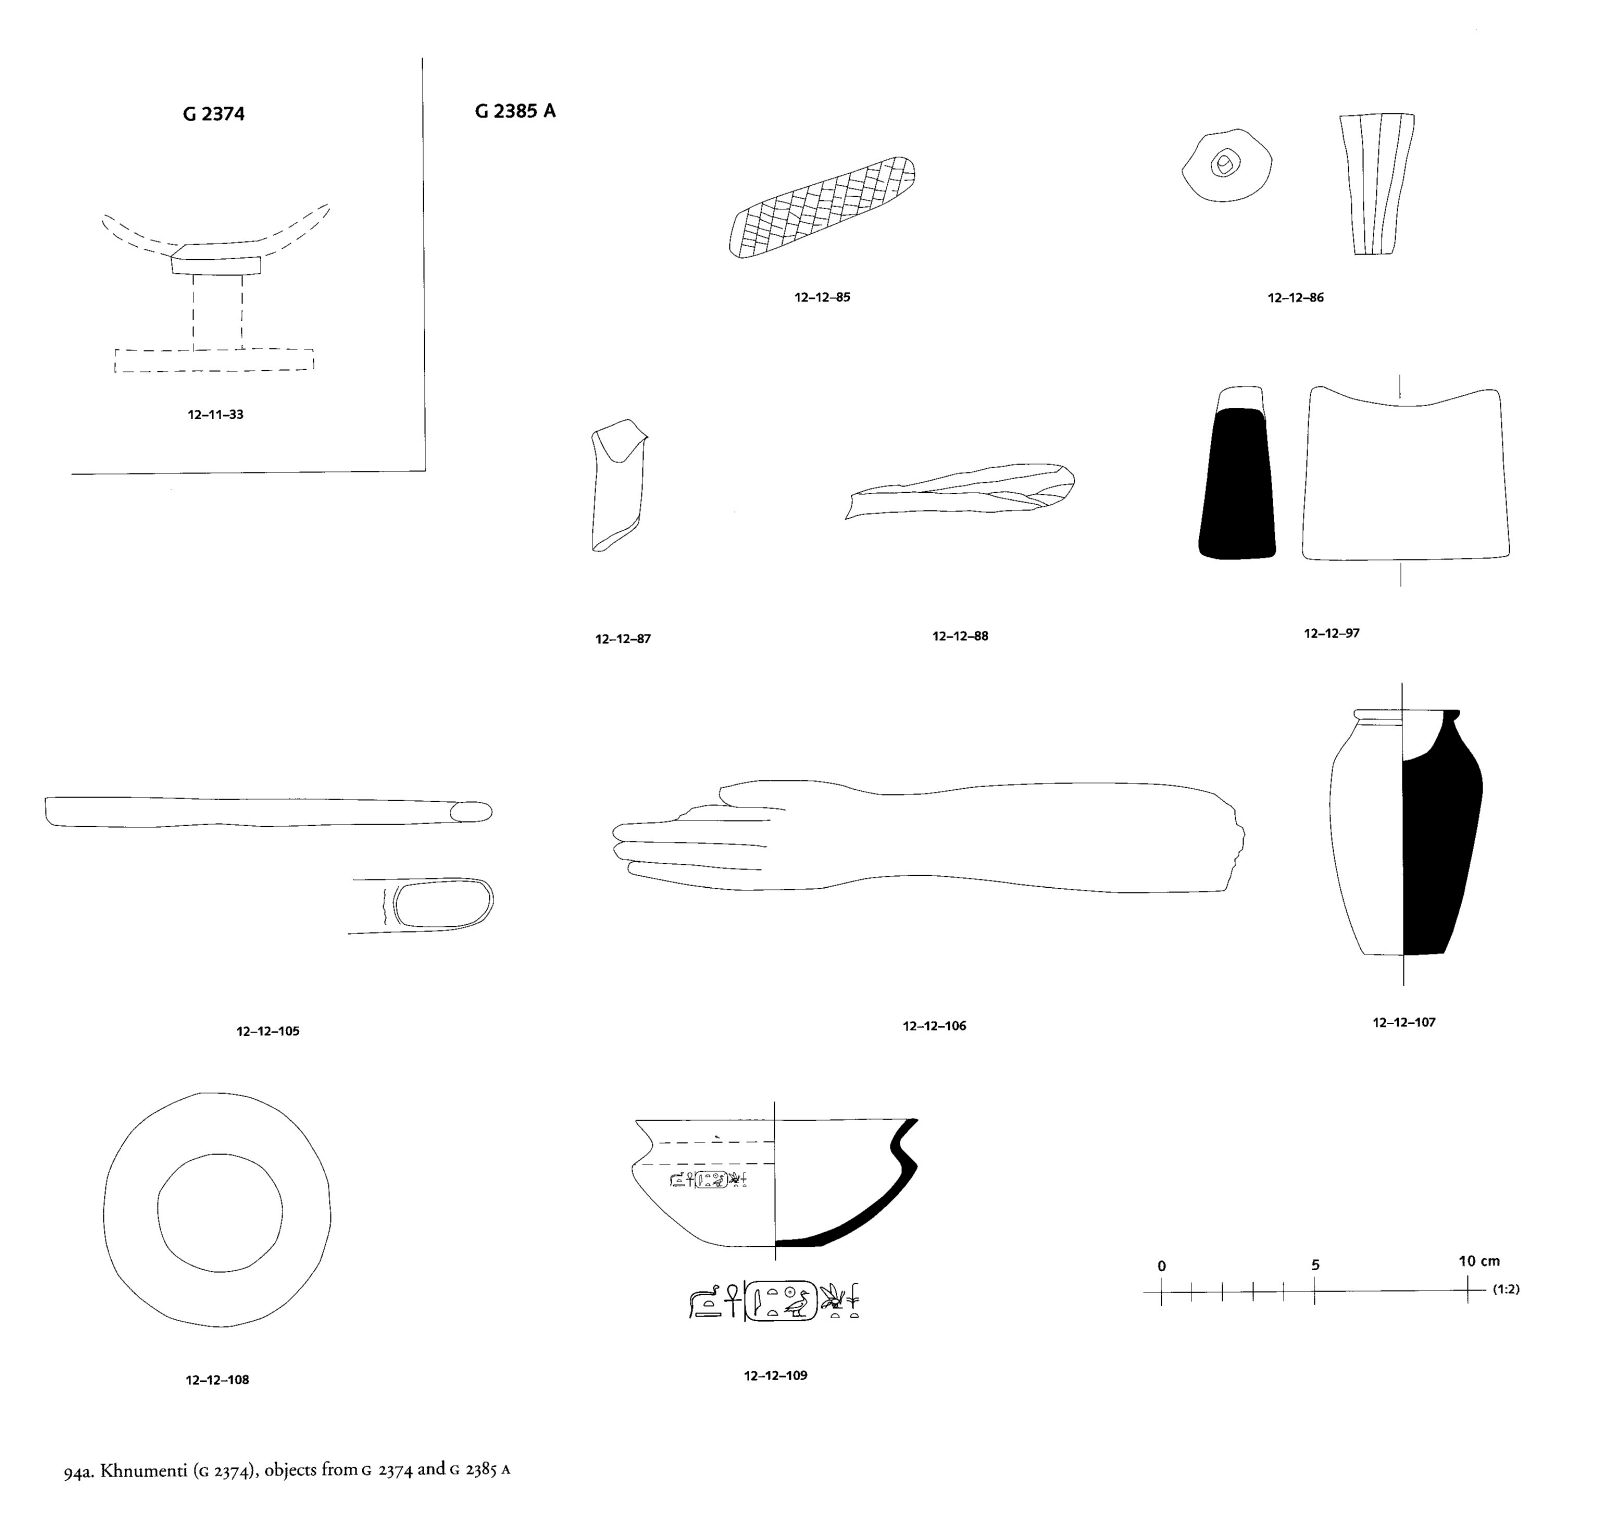 Drawings: Objects from G 2374 and G 2385, Shaft A